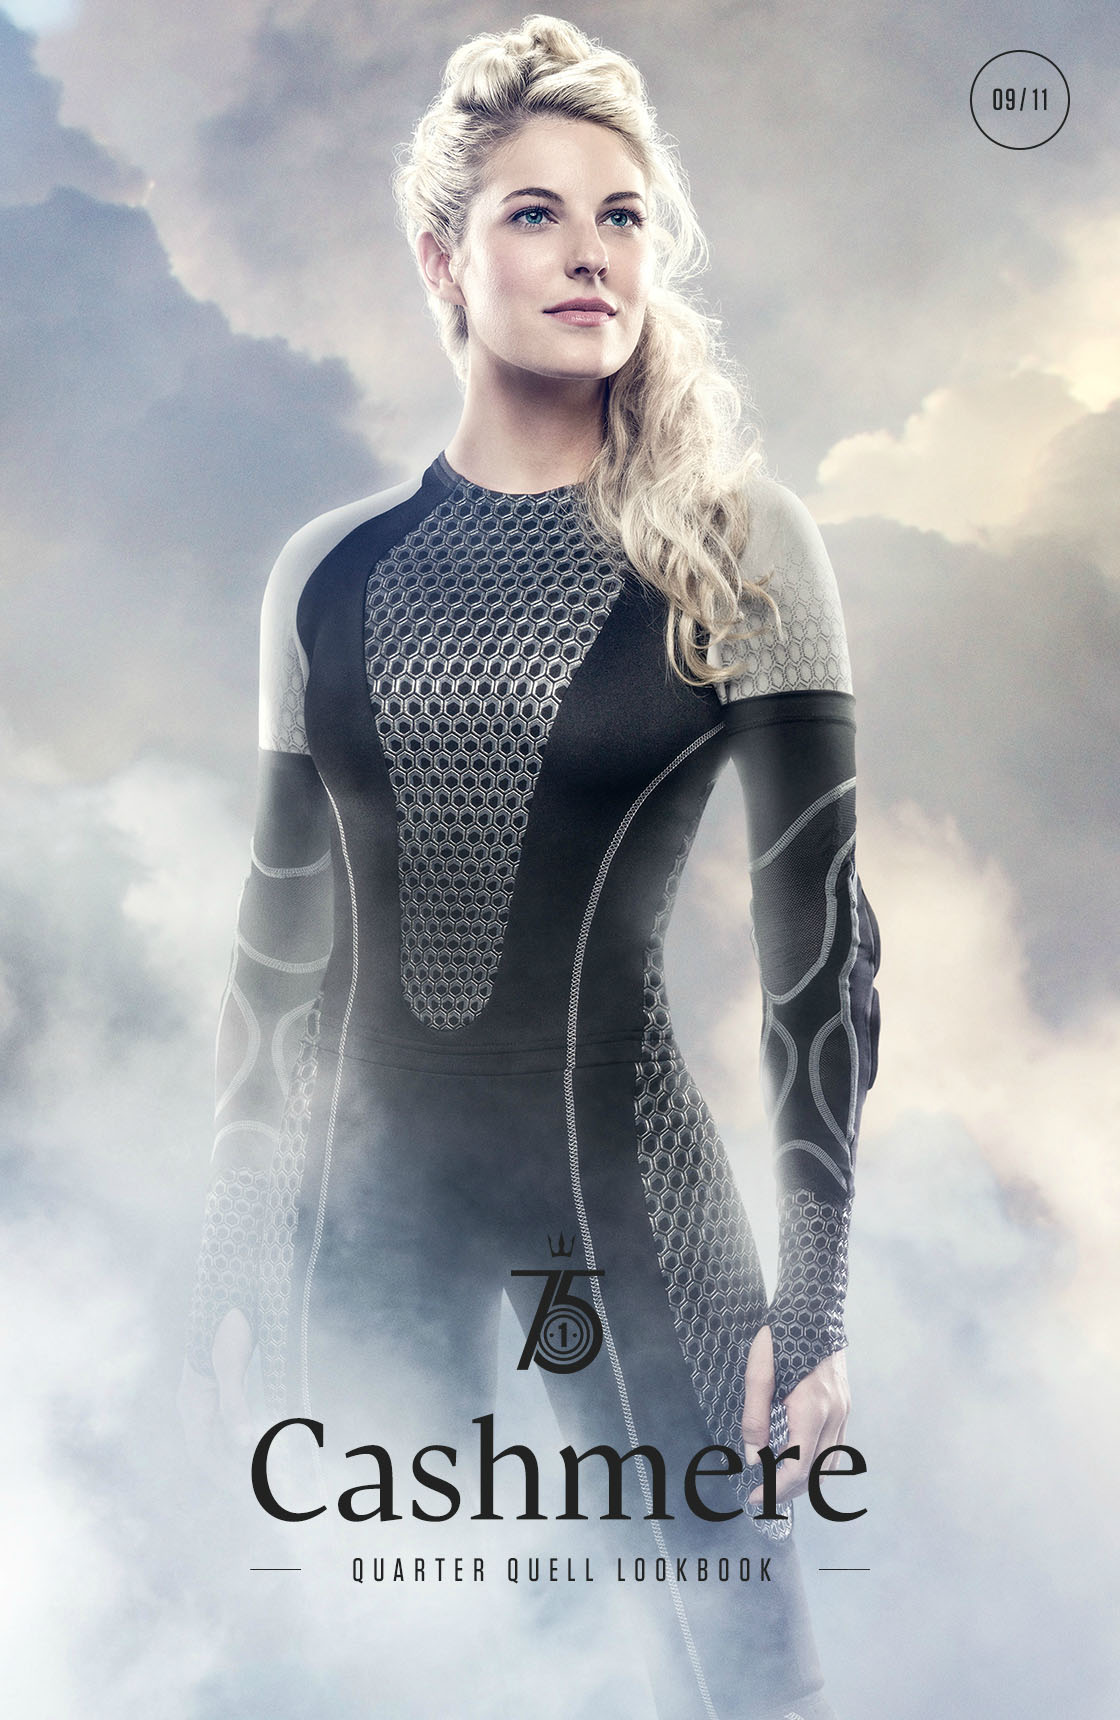 image - quarter quell cashmere | the hunger games wiki | fandom